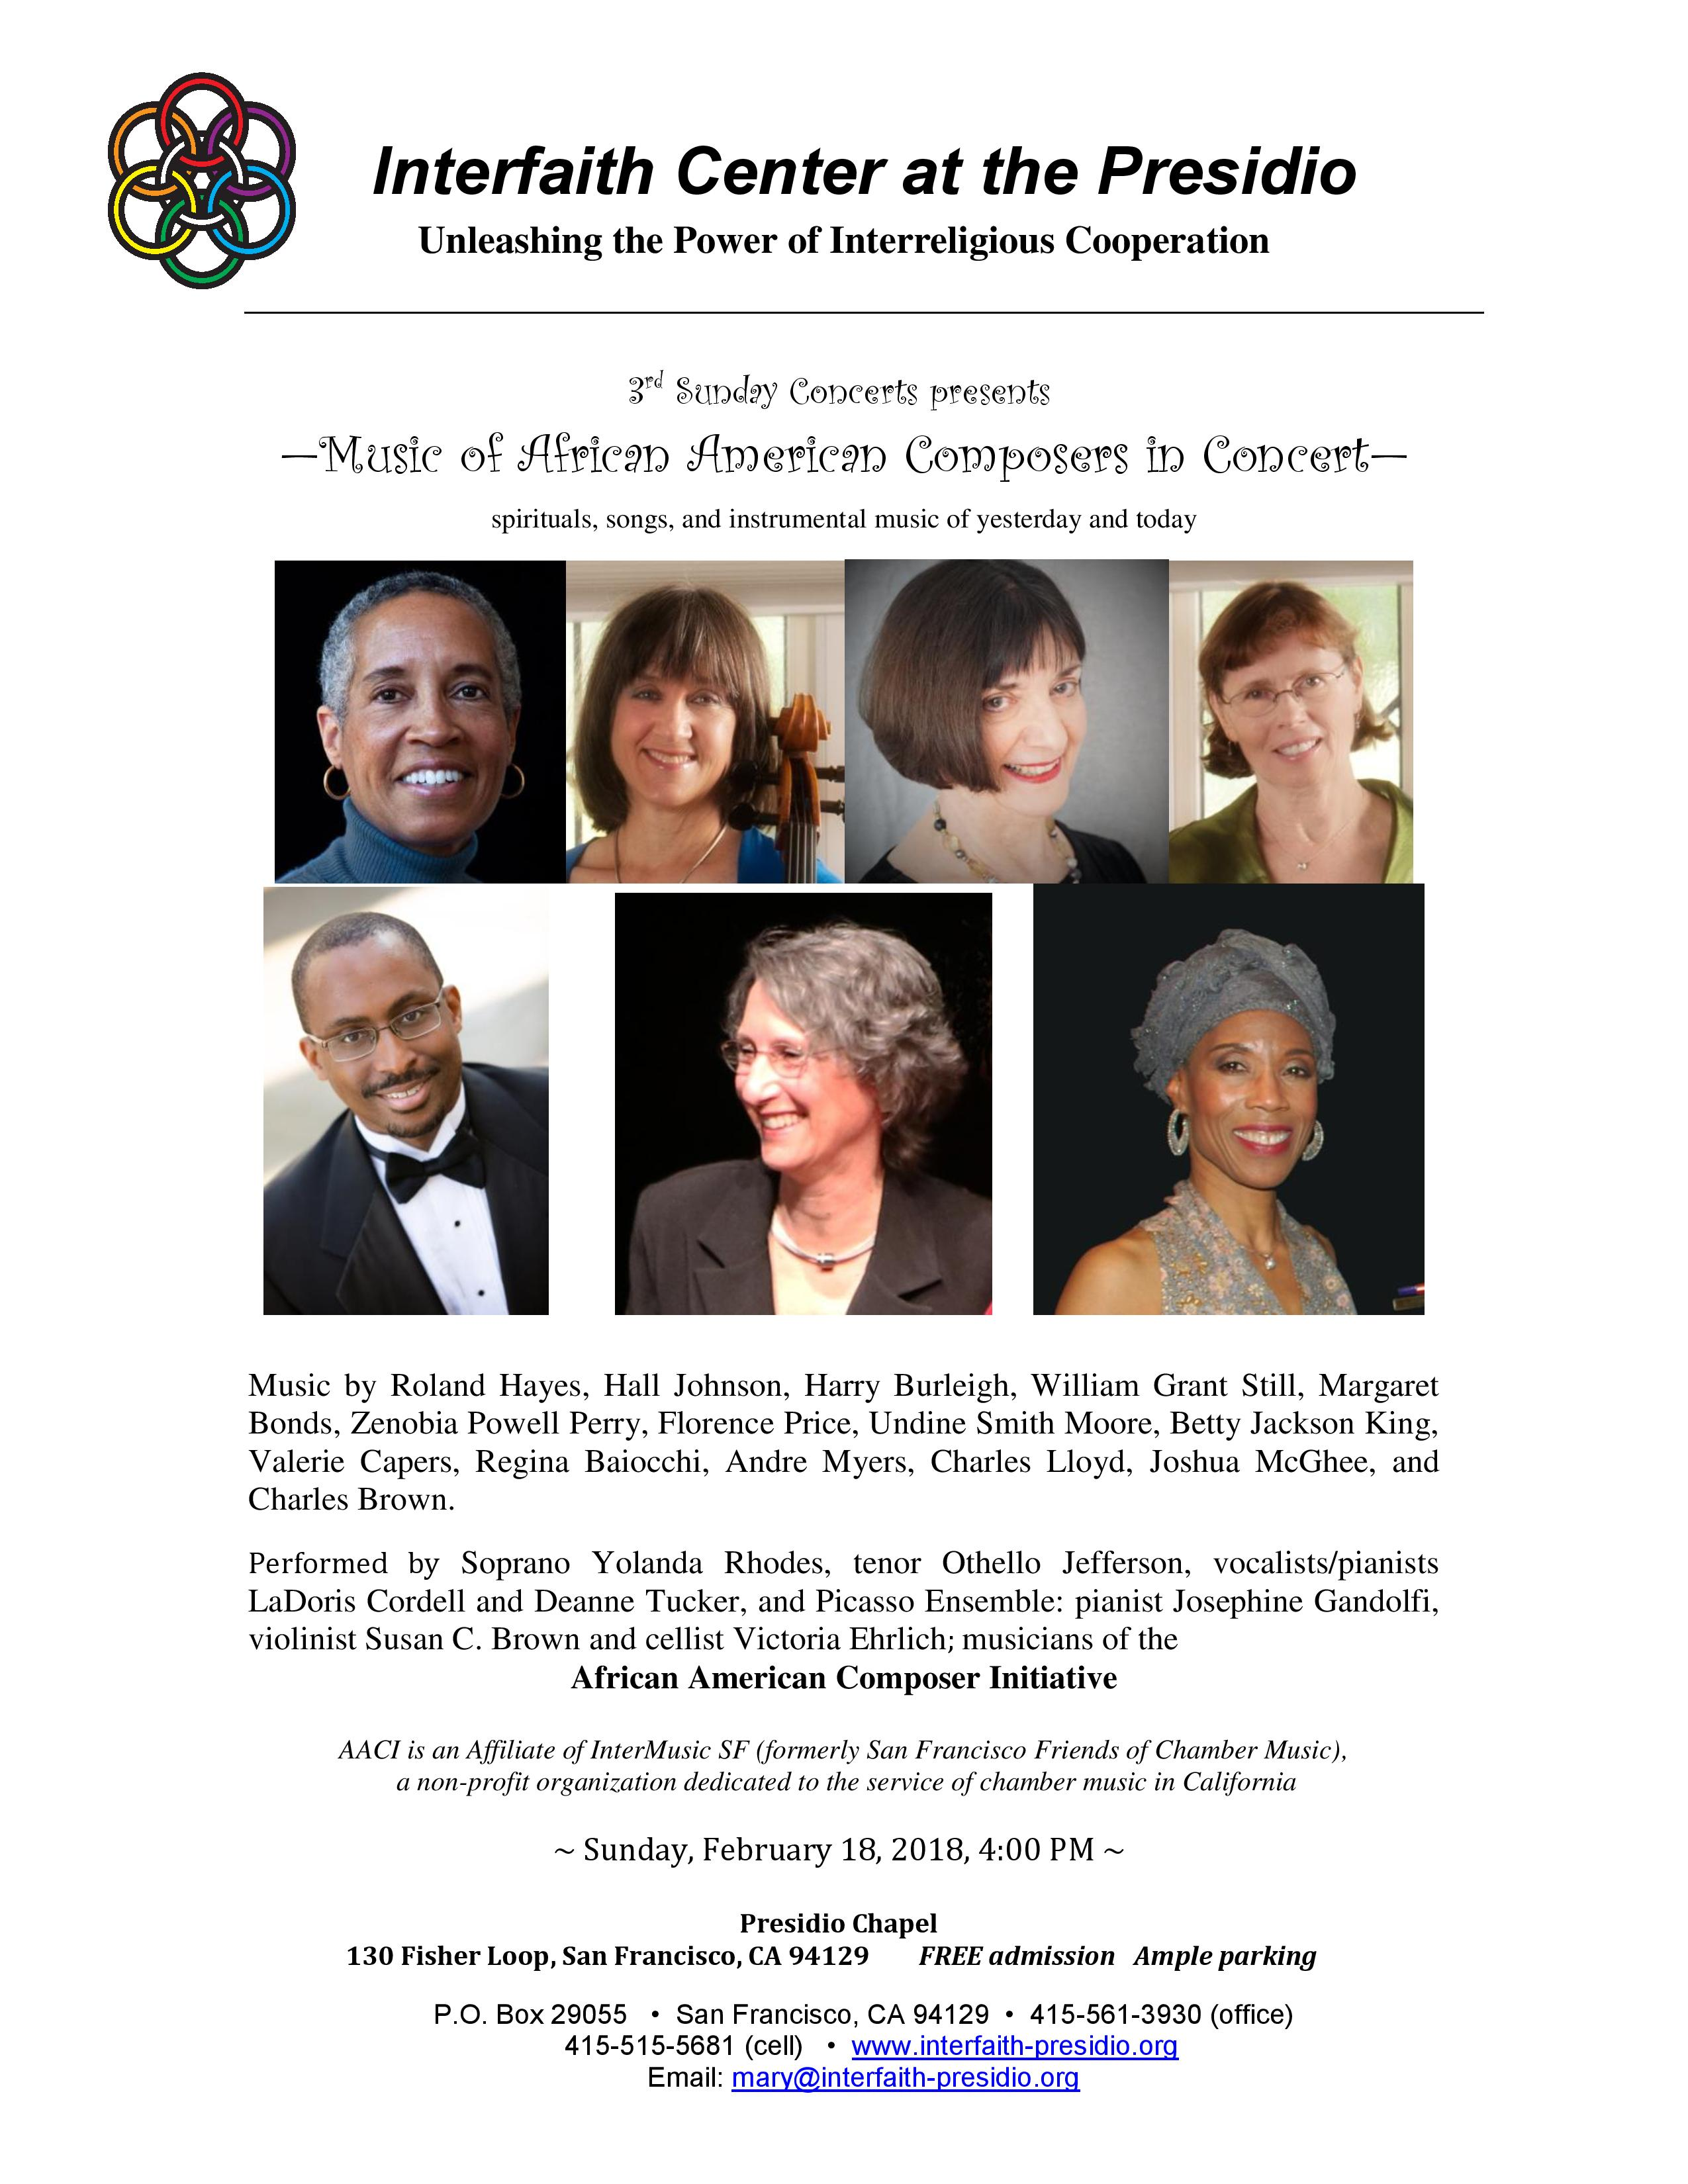 Music of African American Composers in Concert | San Francisco